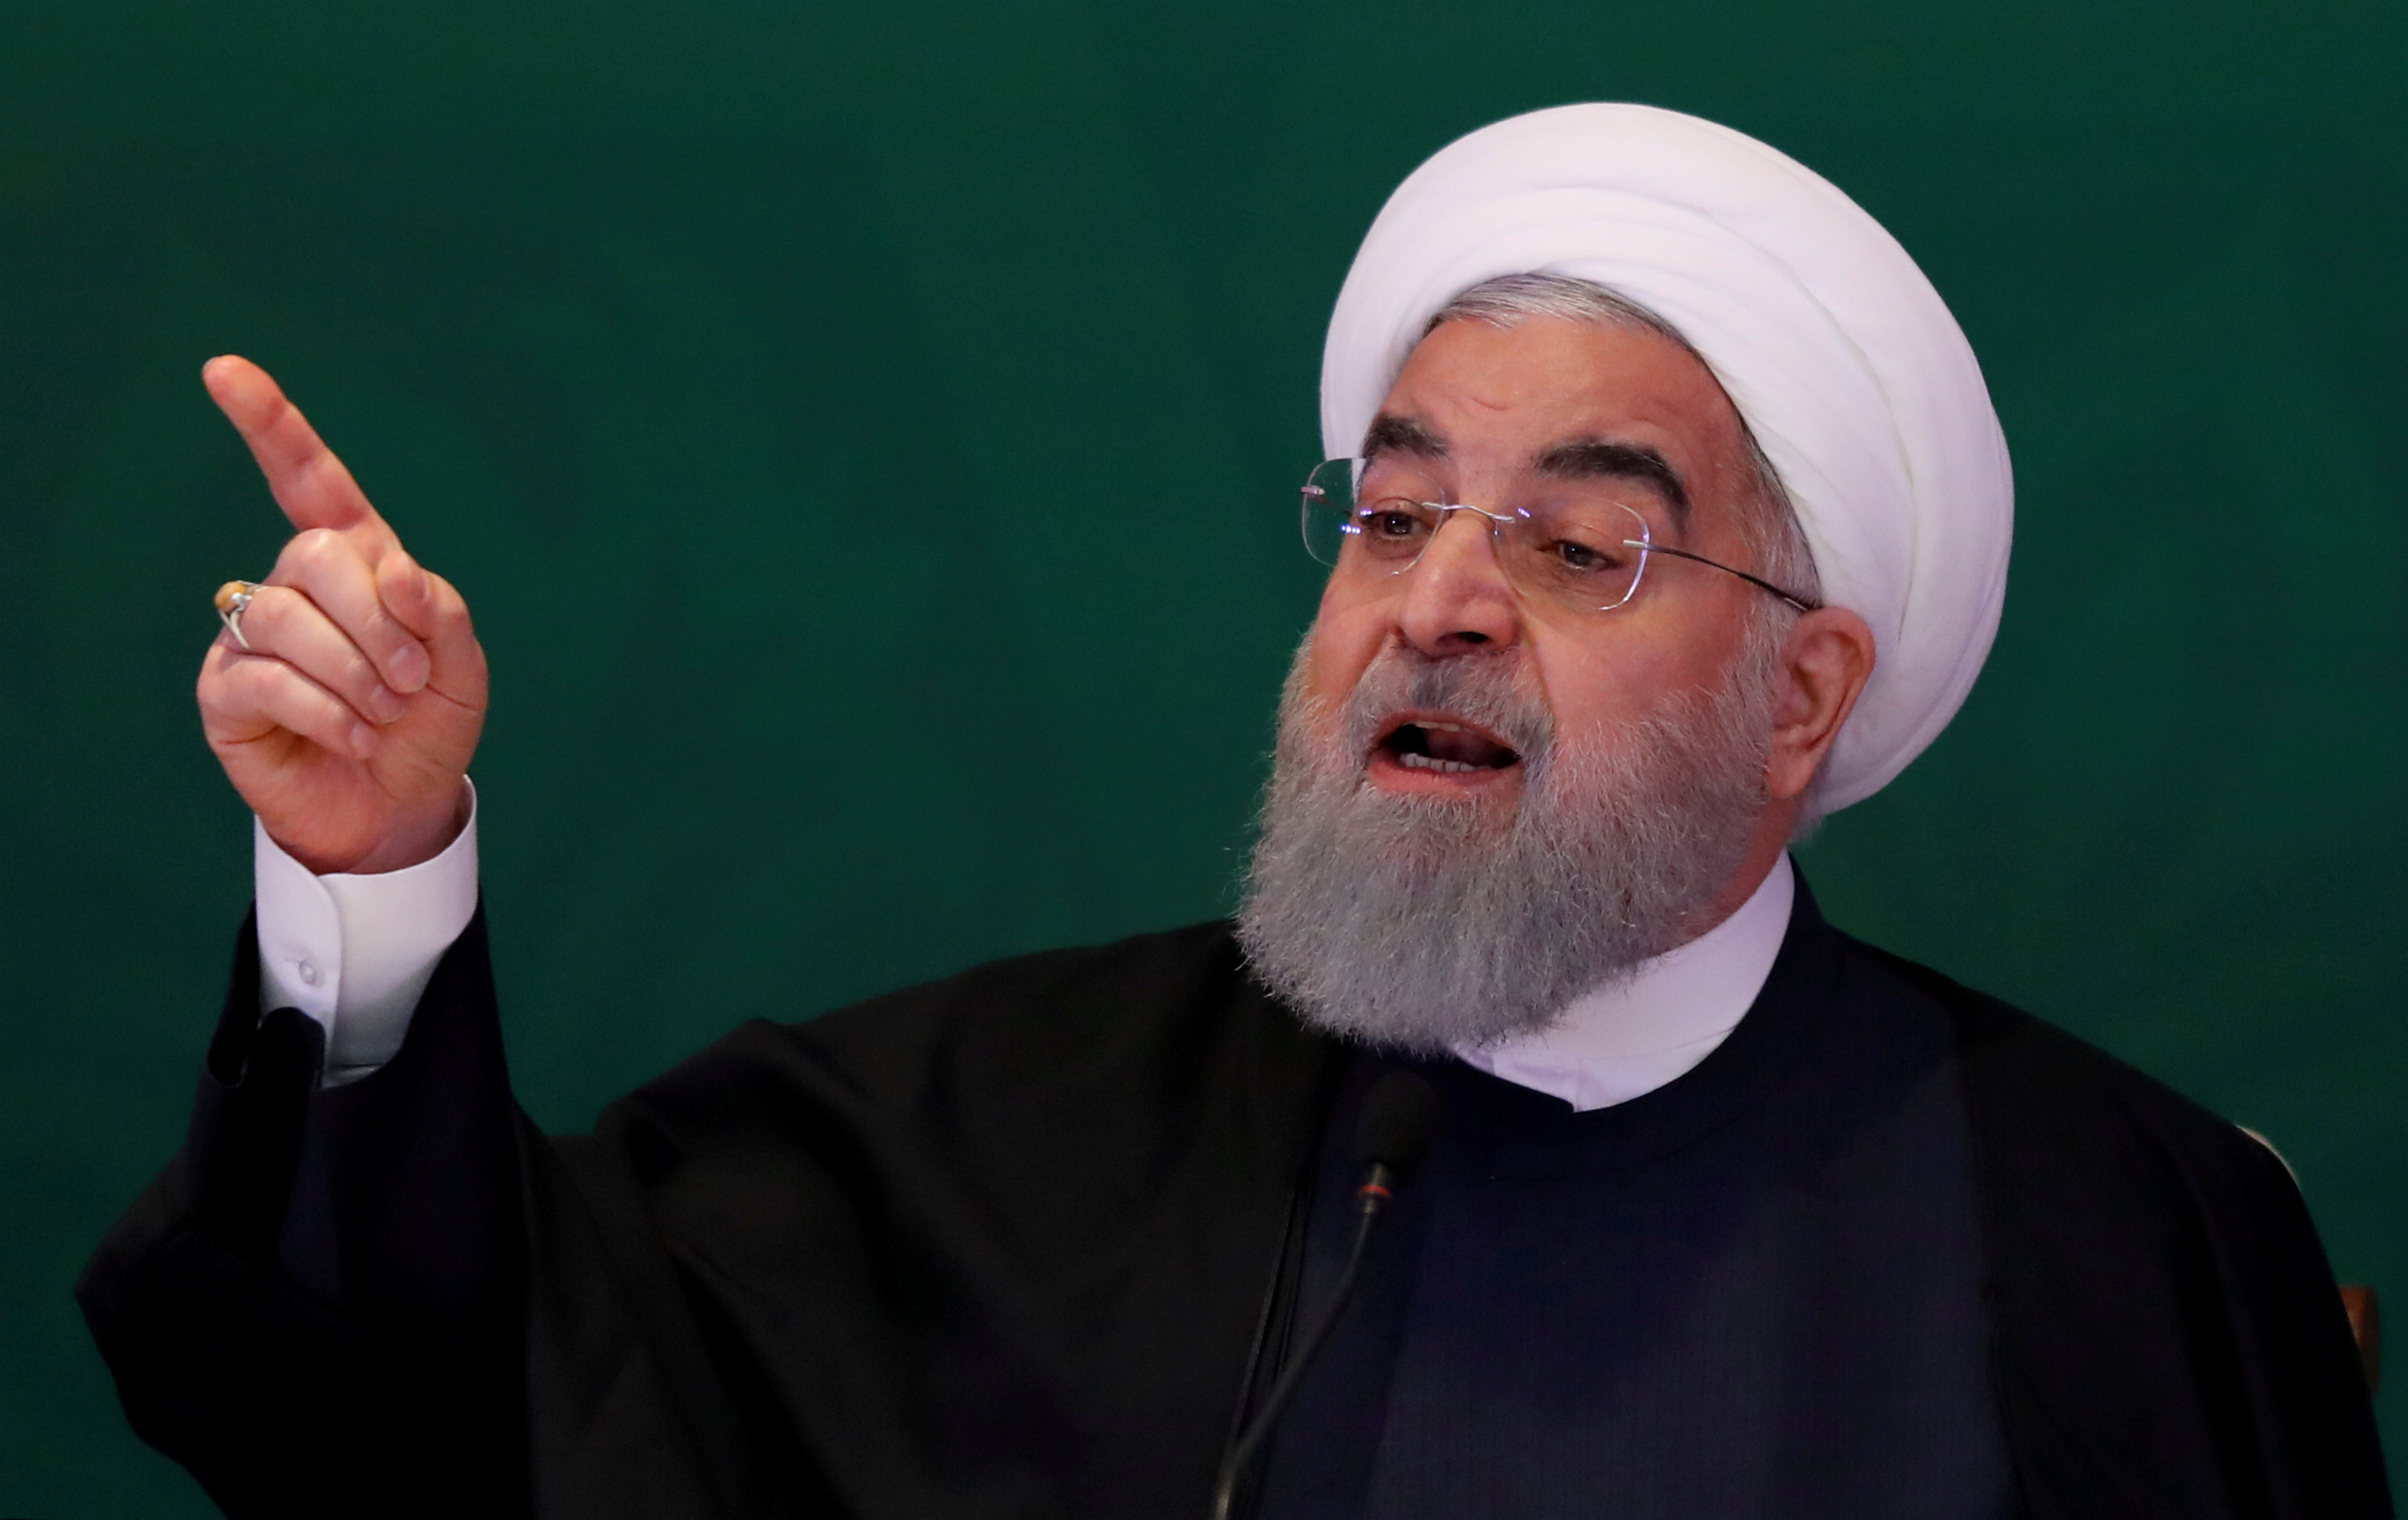 FILE PHOTO: Iranian President Hassan Rouhani speaks during a meeting with Muslim leaders and scholars in Hyderabad, India, February 15, 2018. REUTERS/Danish Siddiqui/File Photo